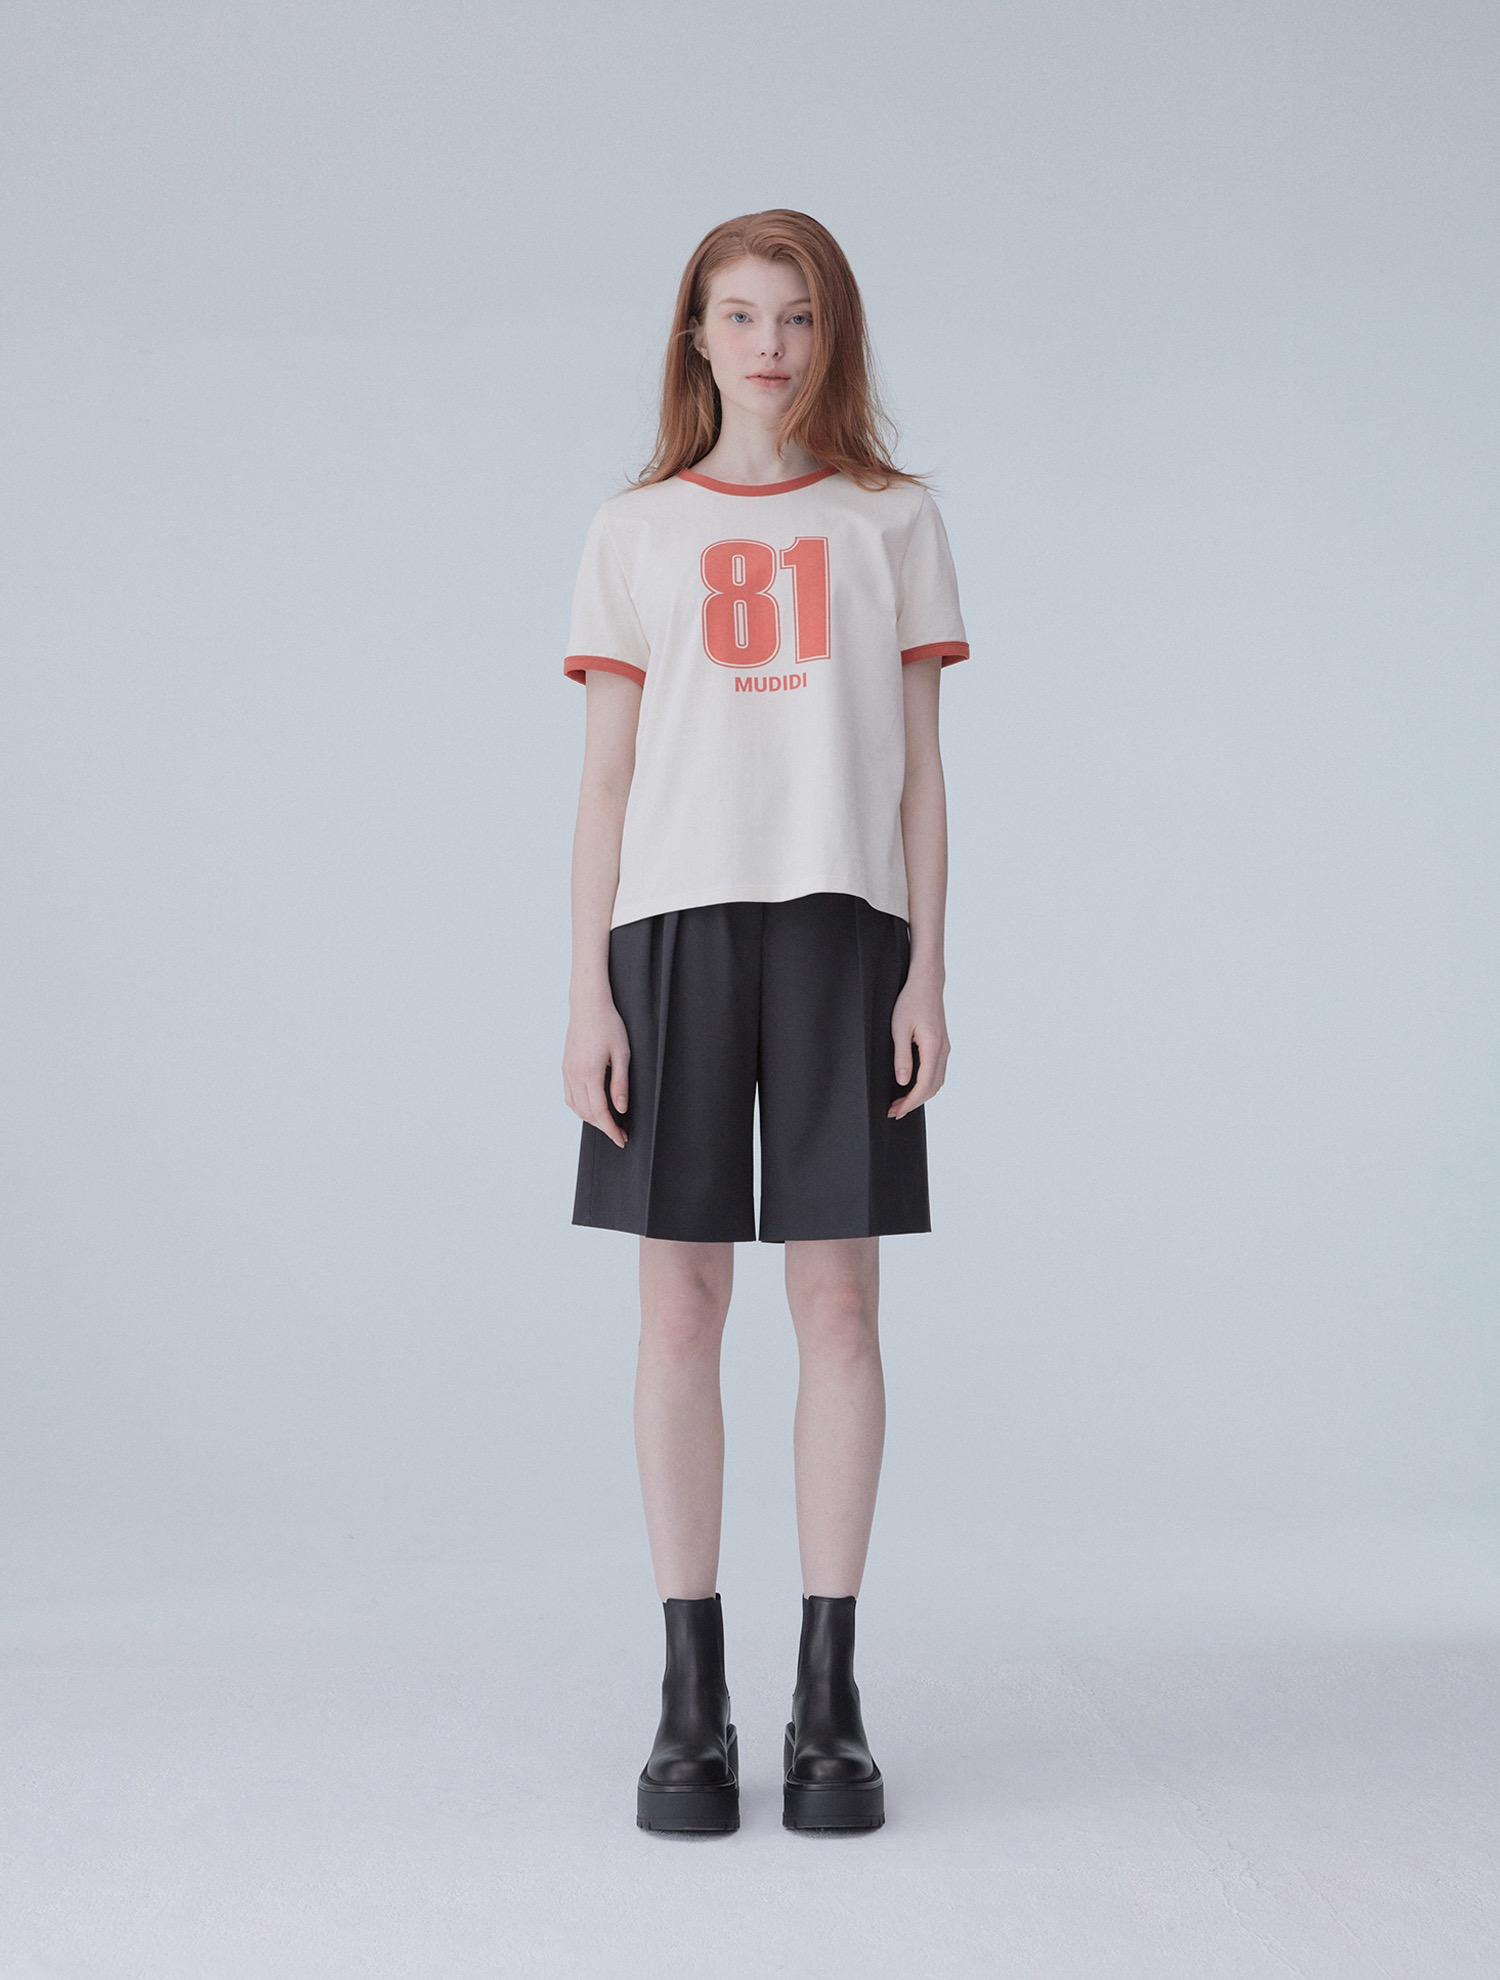 [손담비 착용] Numbering t-shirt 002 Orange